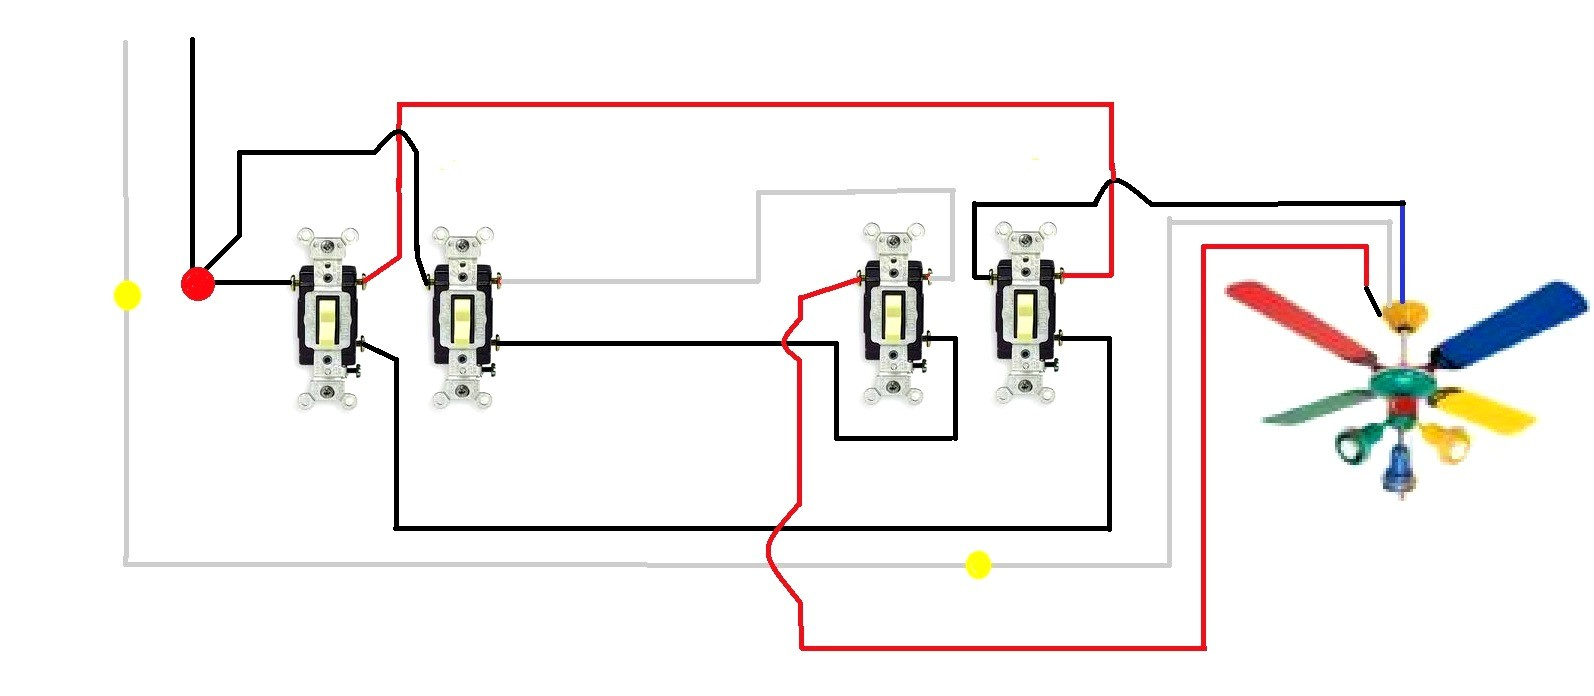 3 way light switching wiring diagram awesome wiring diagram image rh mainetreasurechest com wiring a 3 way switch ceiling fan diagram Ceiling Fan Speed Switch Wiring